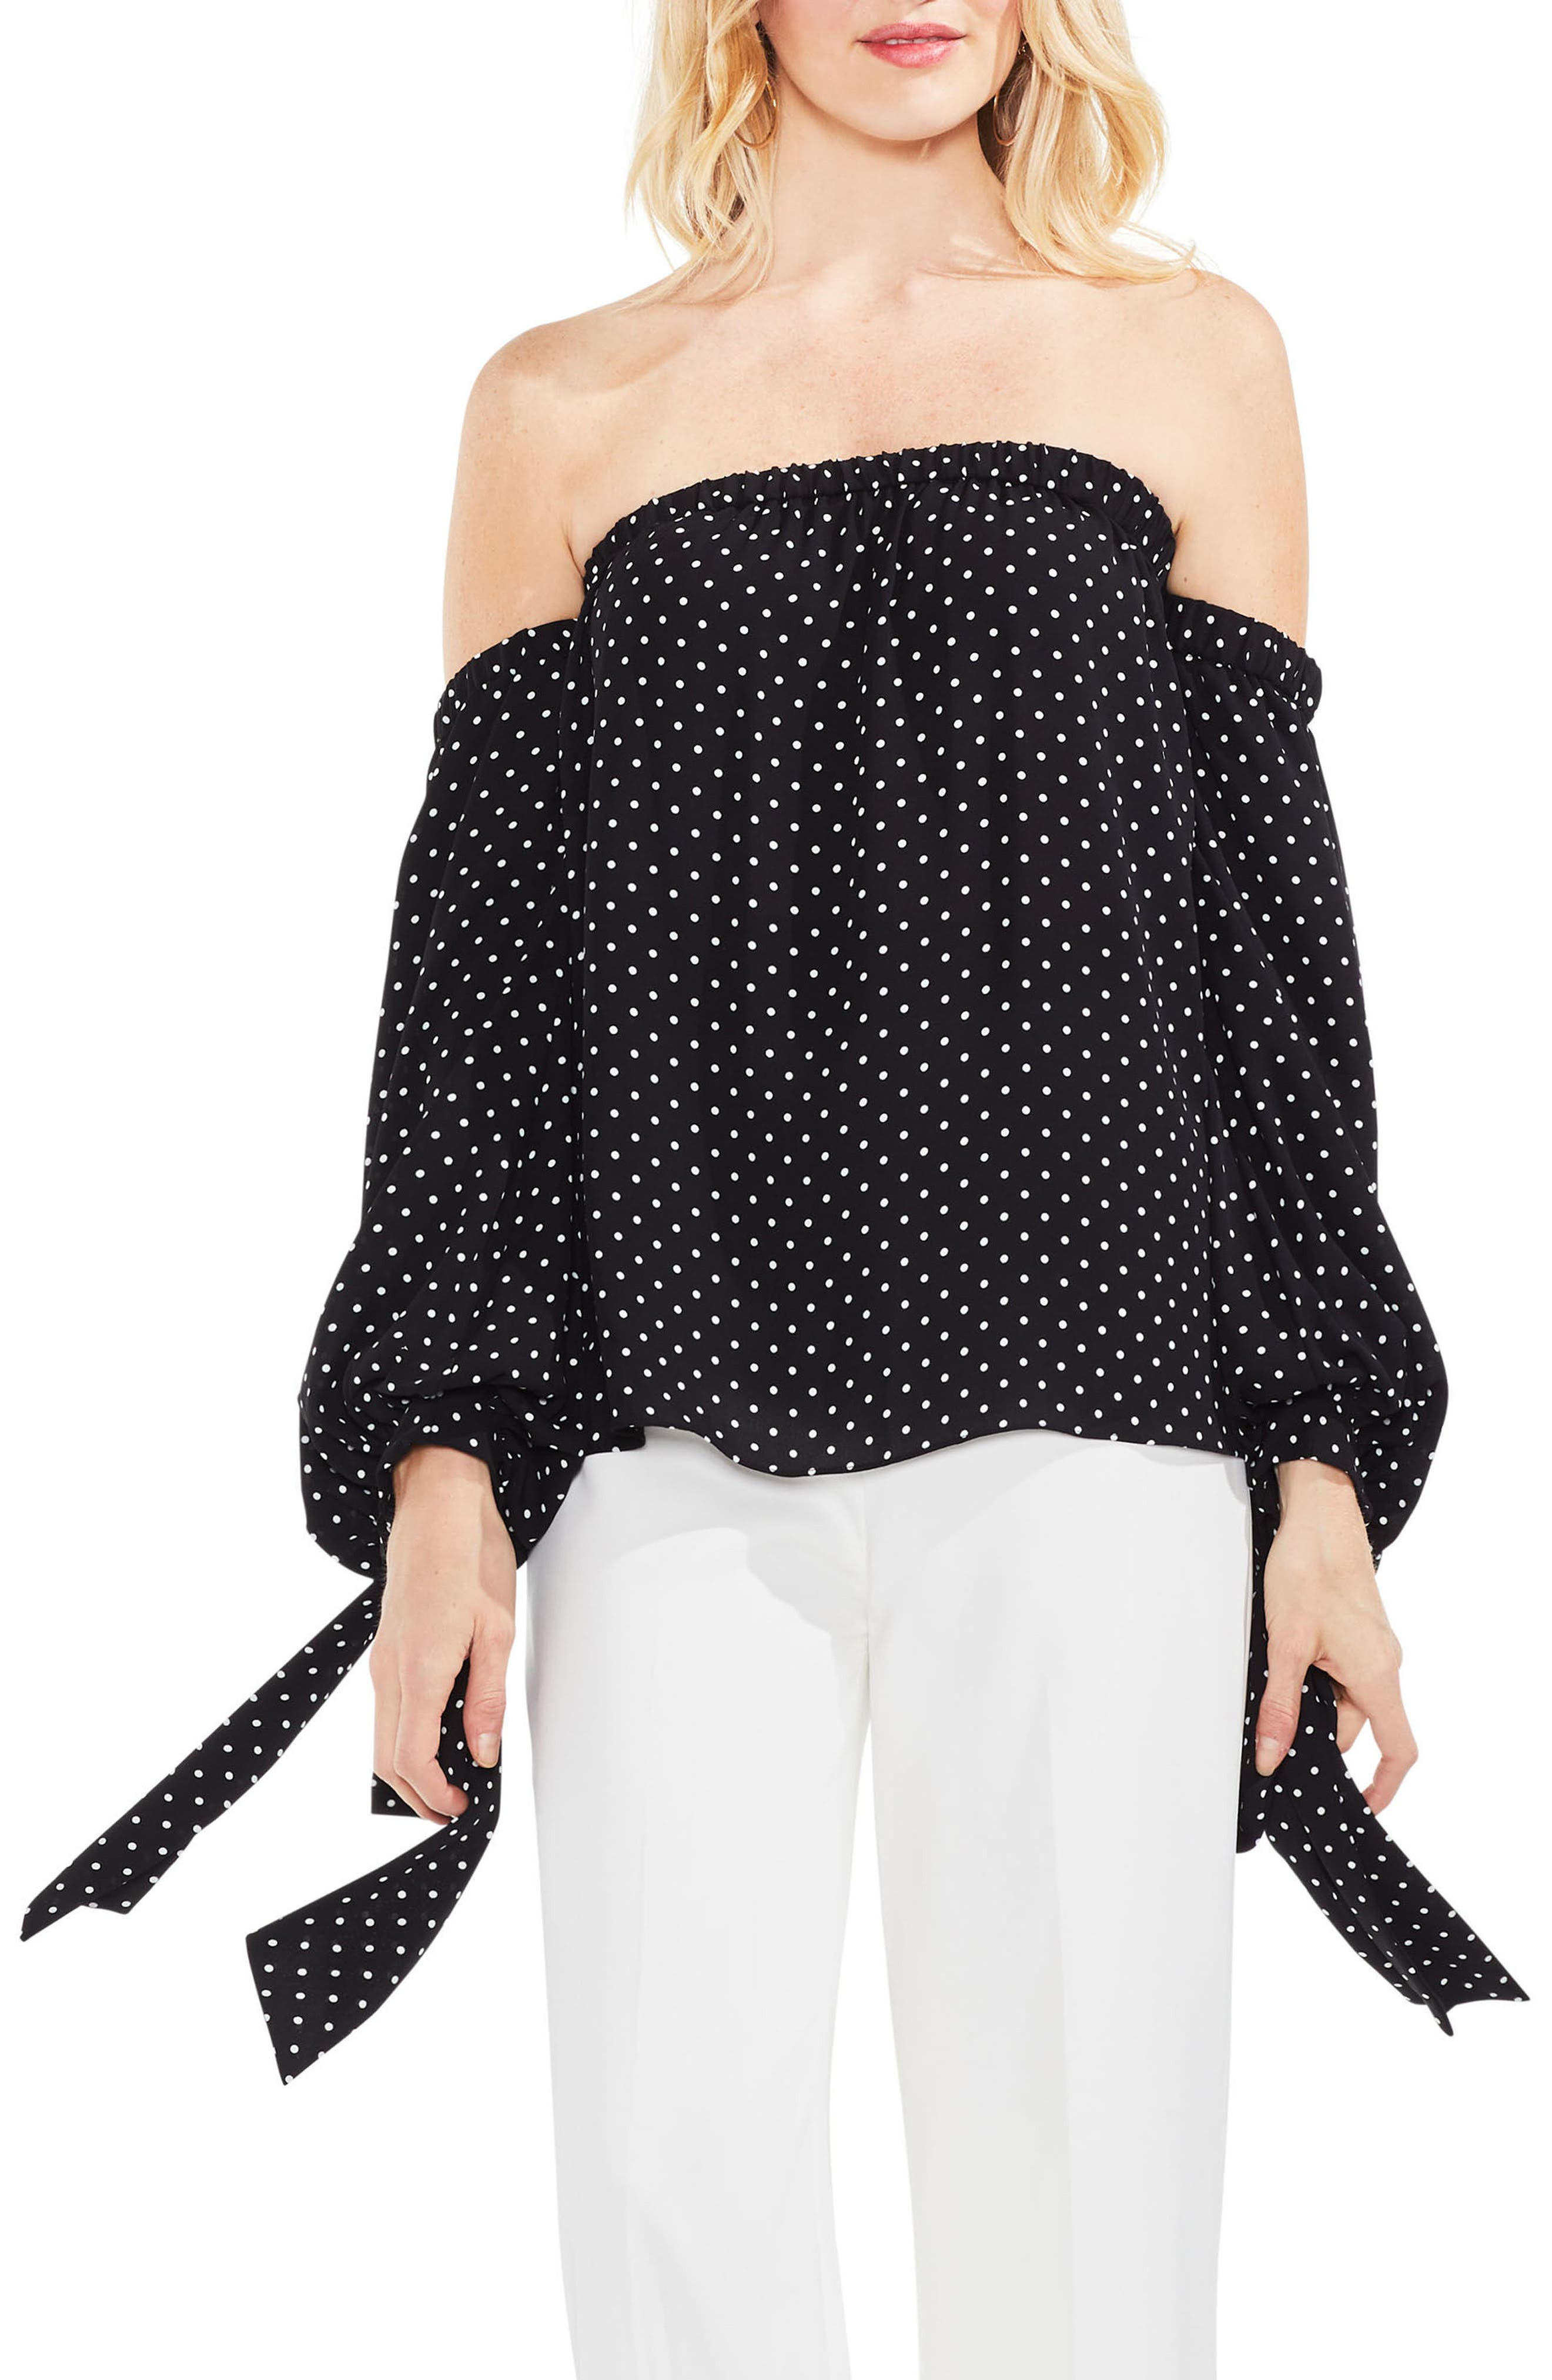 Poetic Dots Off the Shoulder Blouse,                         Main,                         color, 006